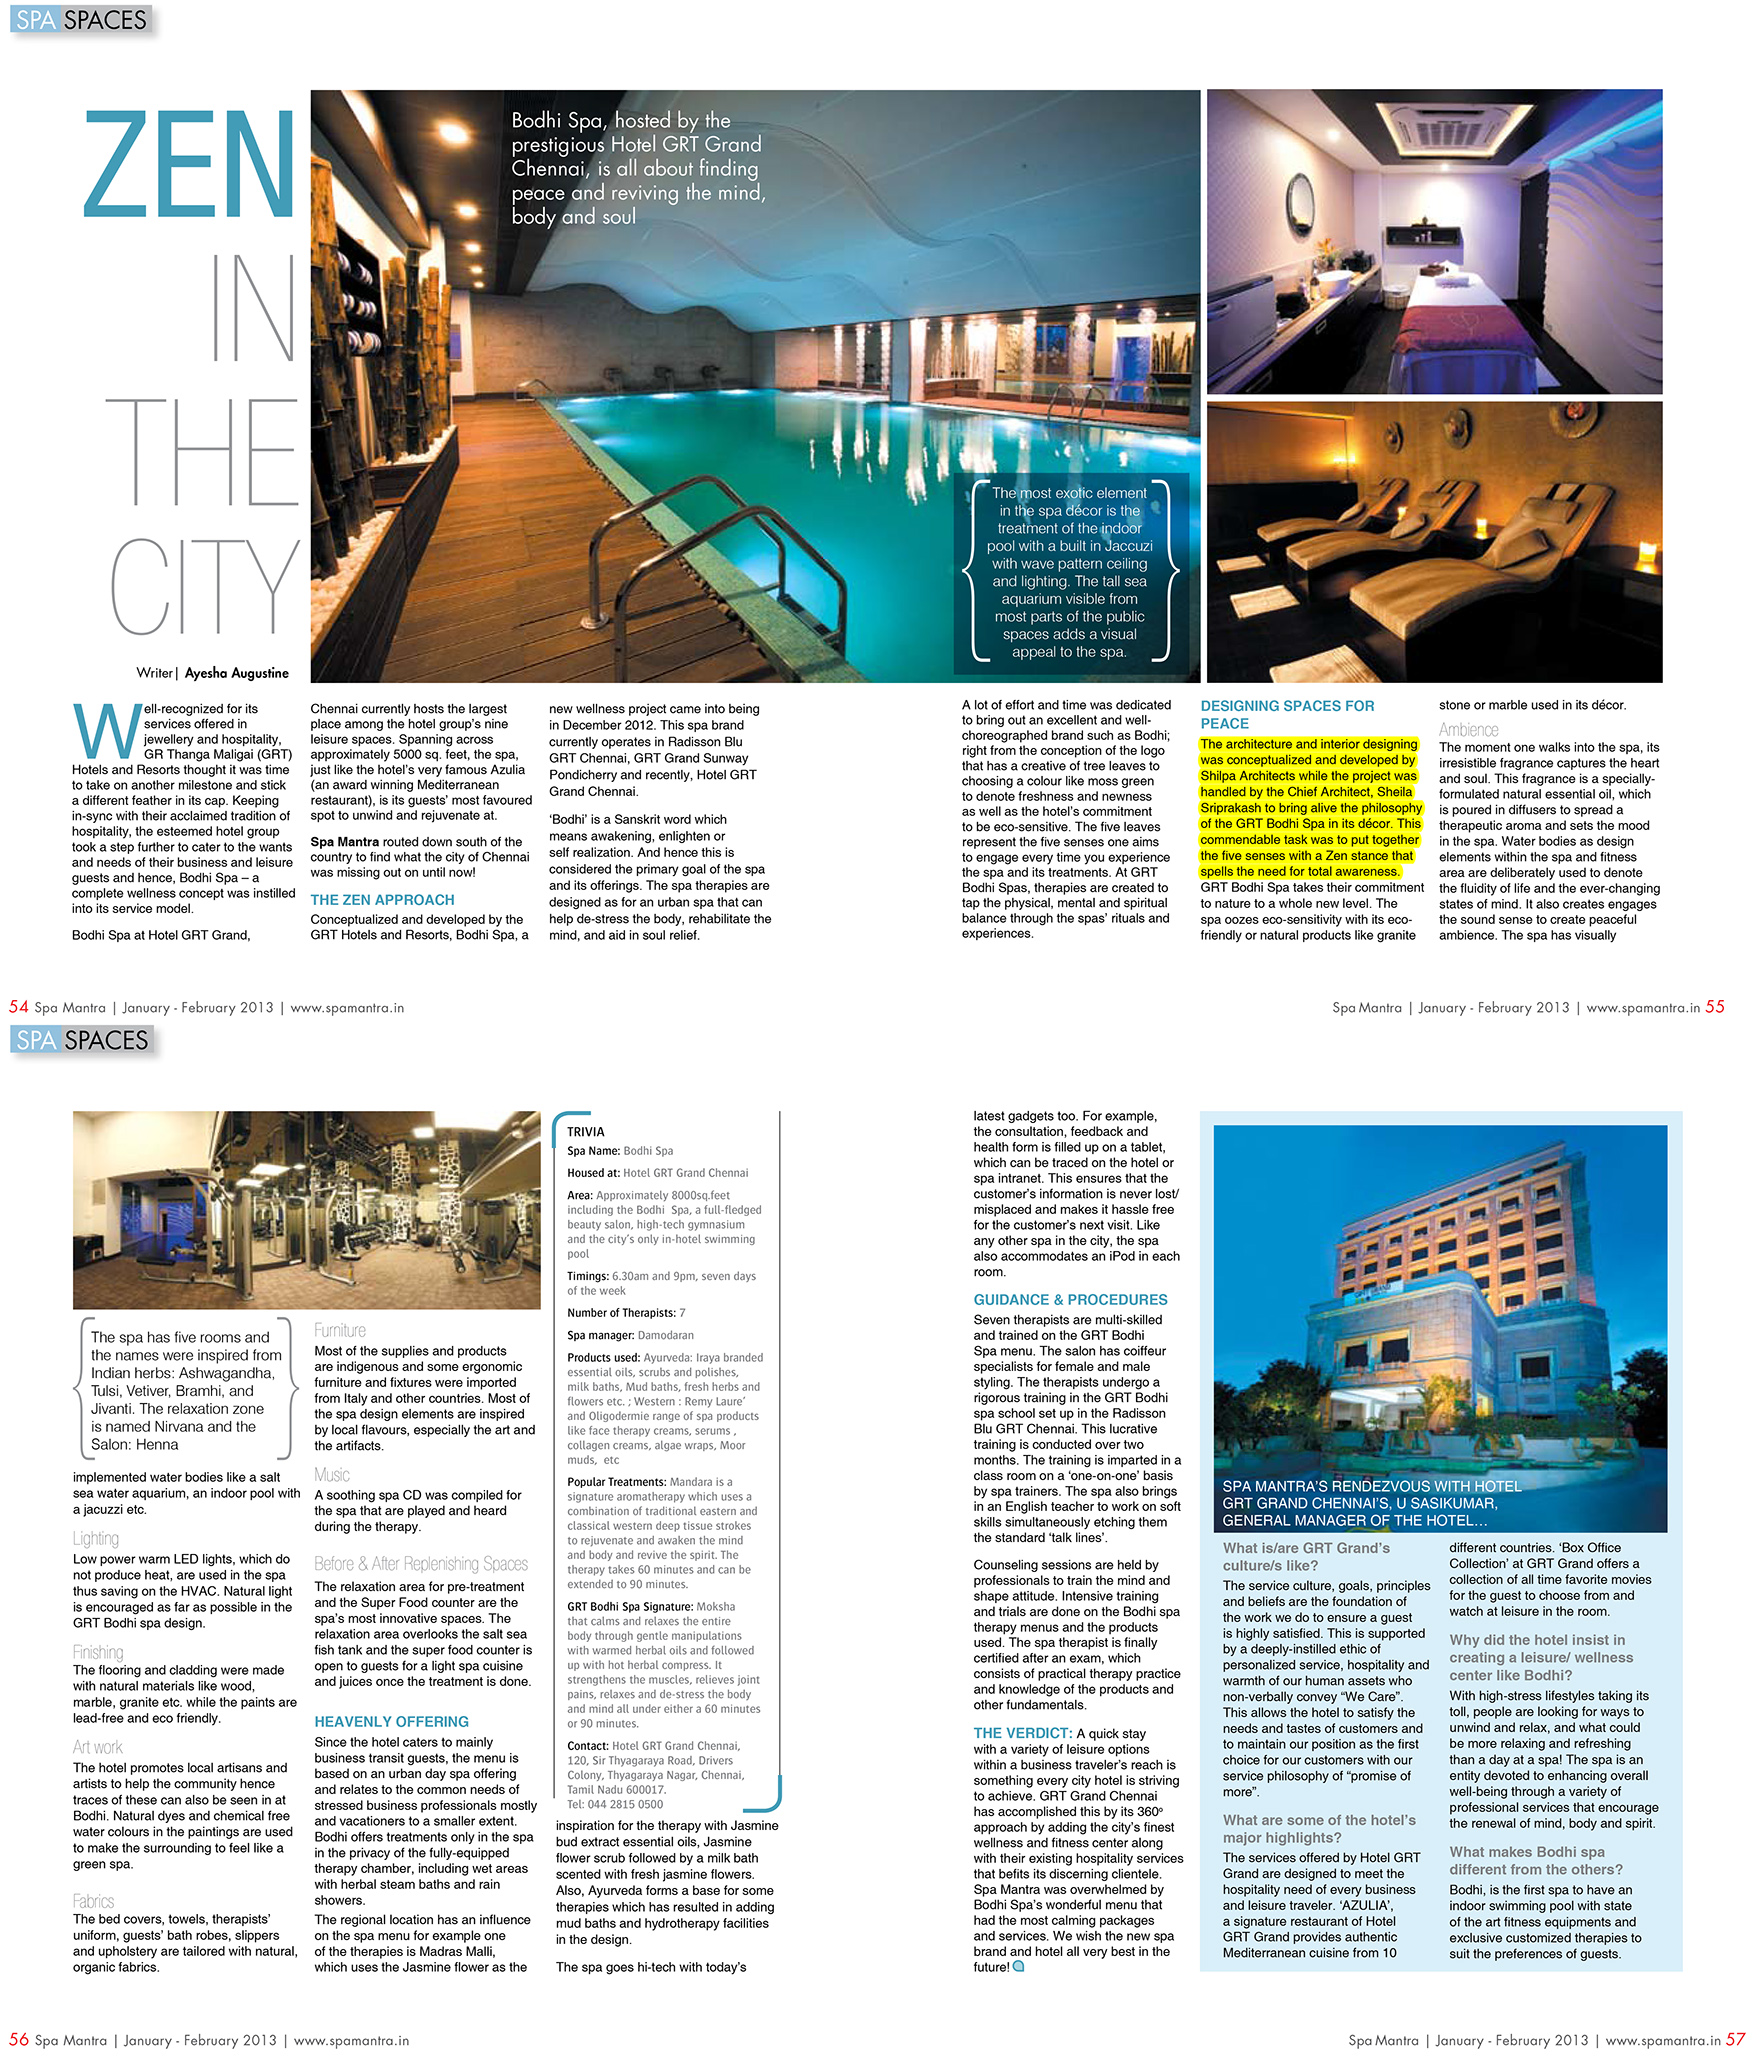 Spa Mantra, Jan/Feb 2013 - Zen in the City - GRT Bodhi Spa designed by Shilpa Architects